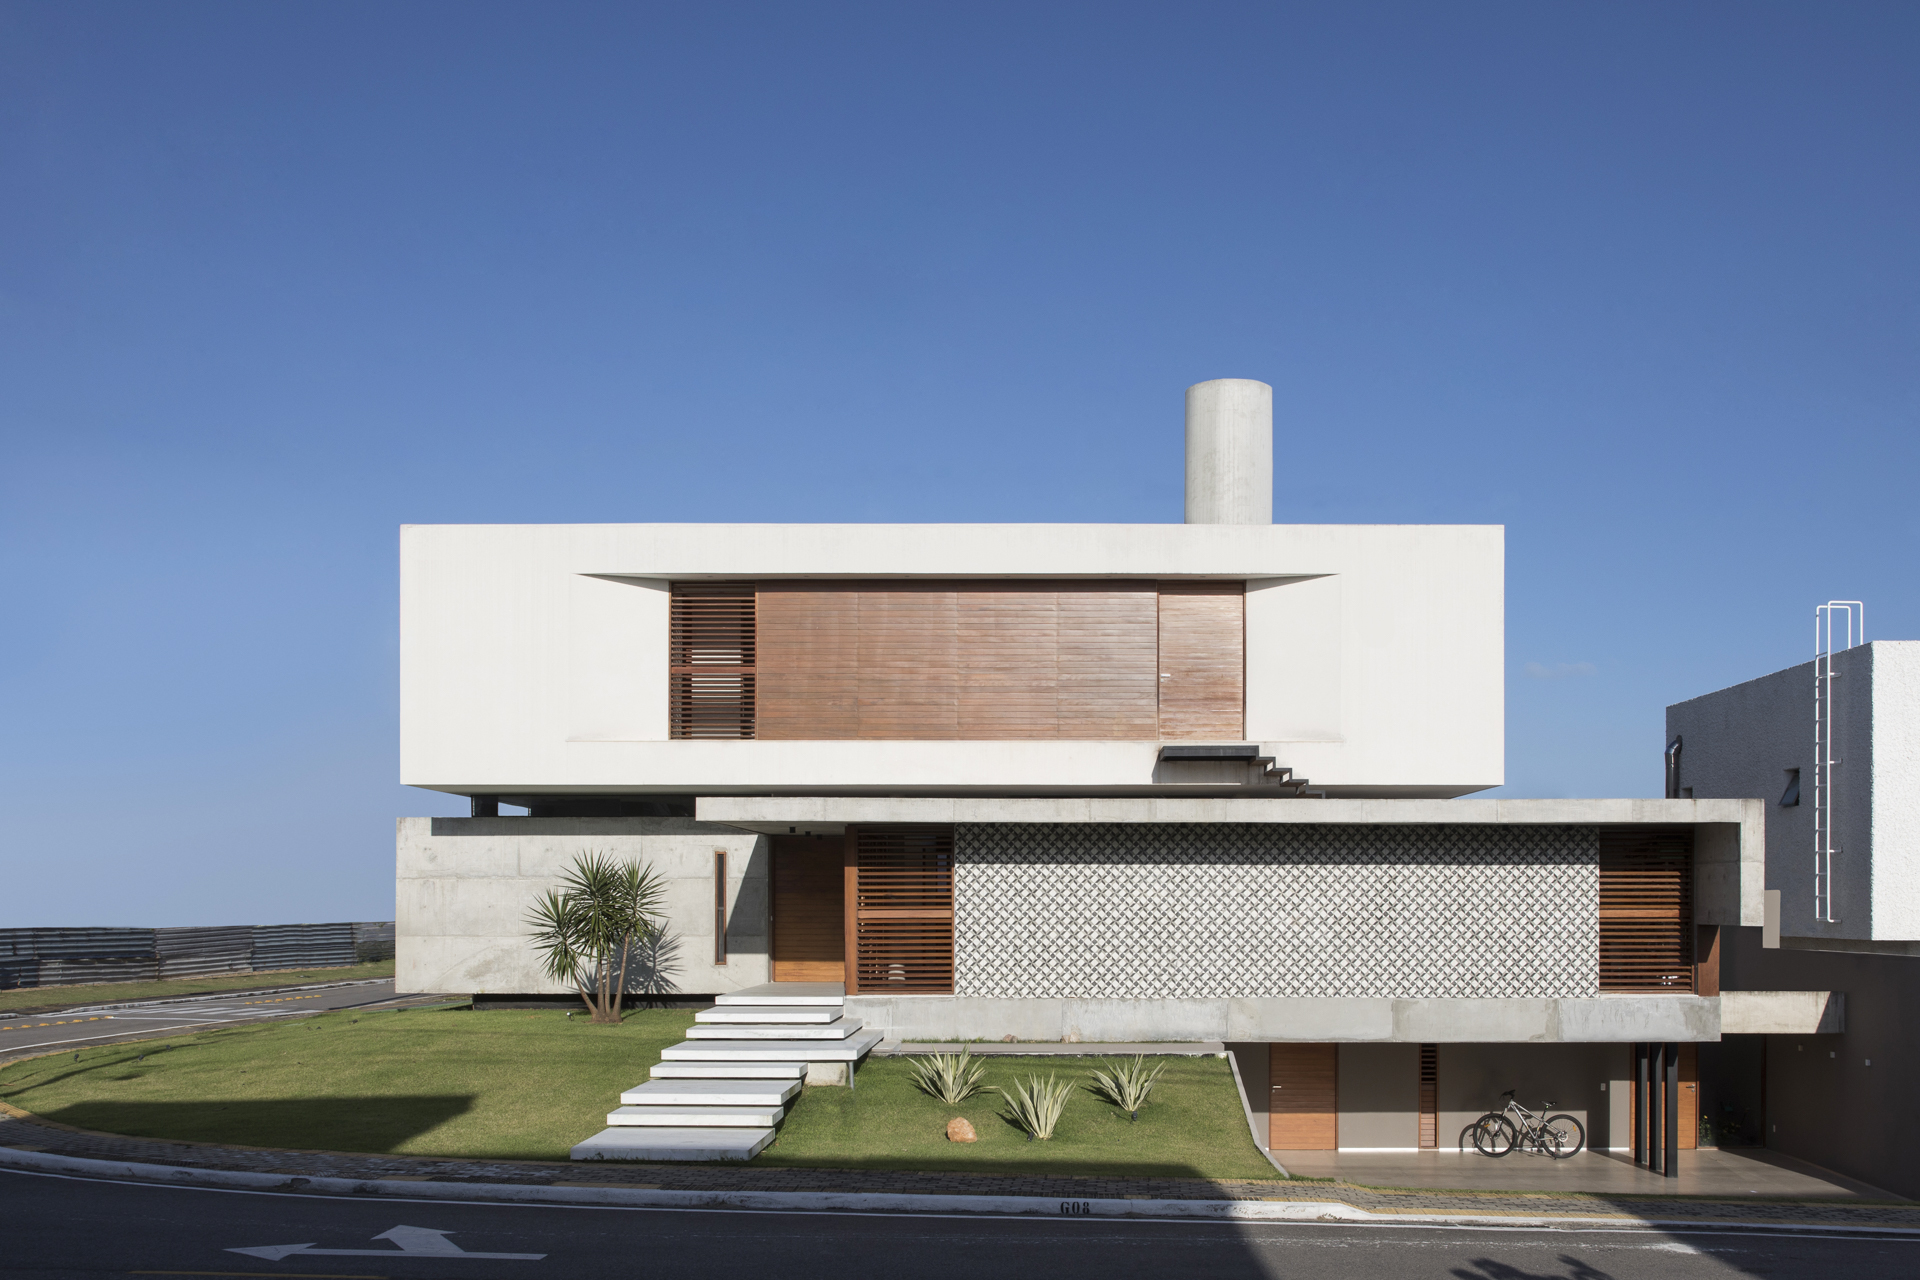 17_CASA_IF_-_Martins_Lucena_Arquitetos-3.jpg